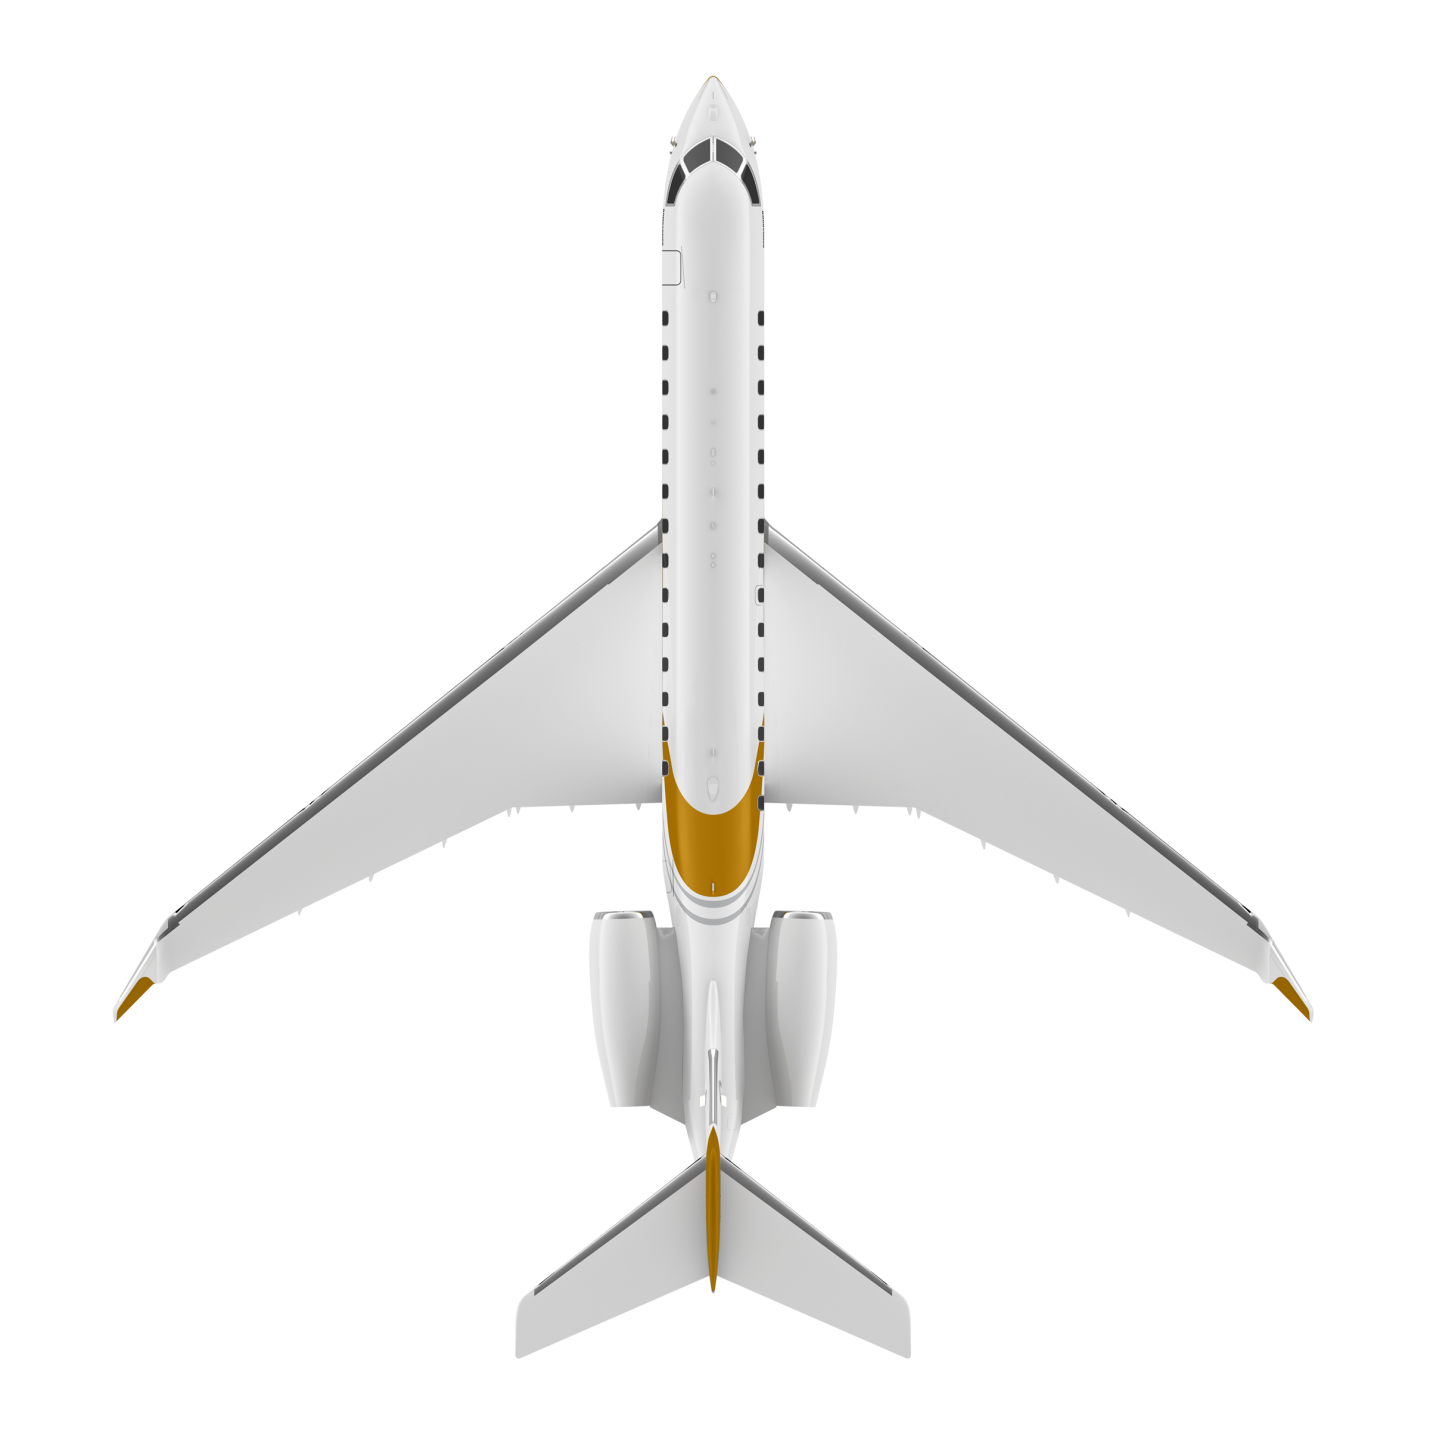 Global 7500 top view